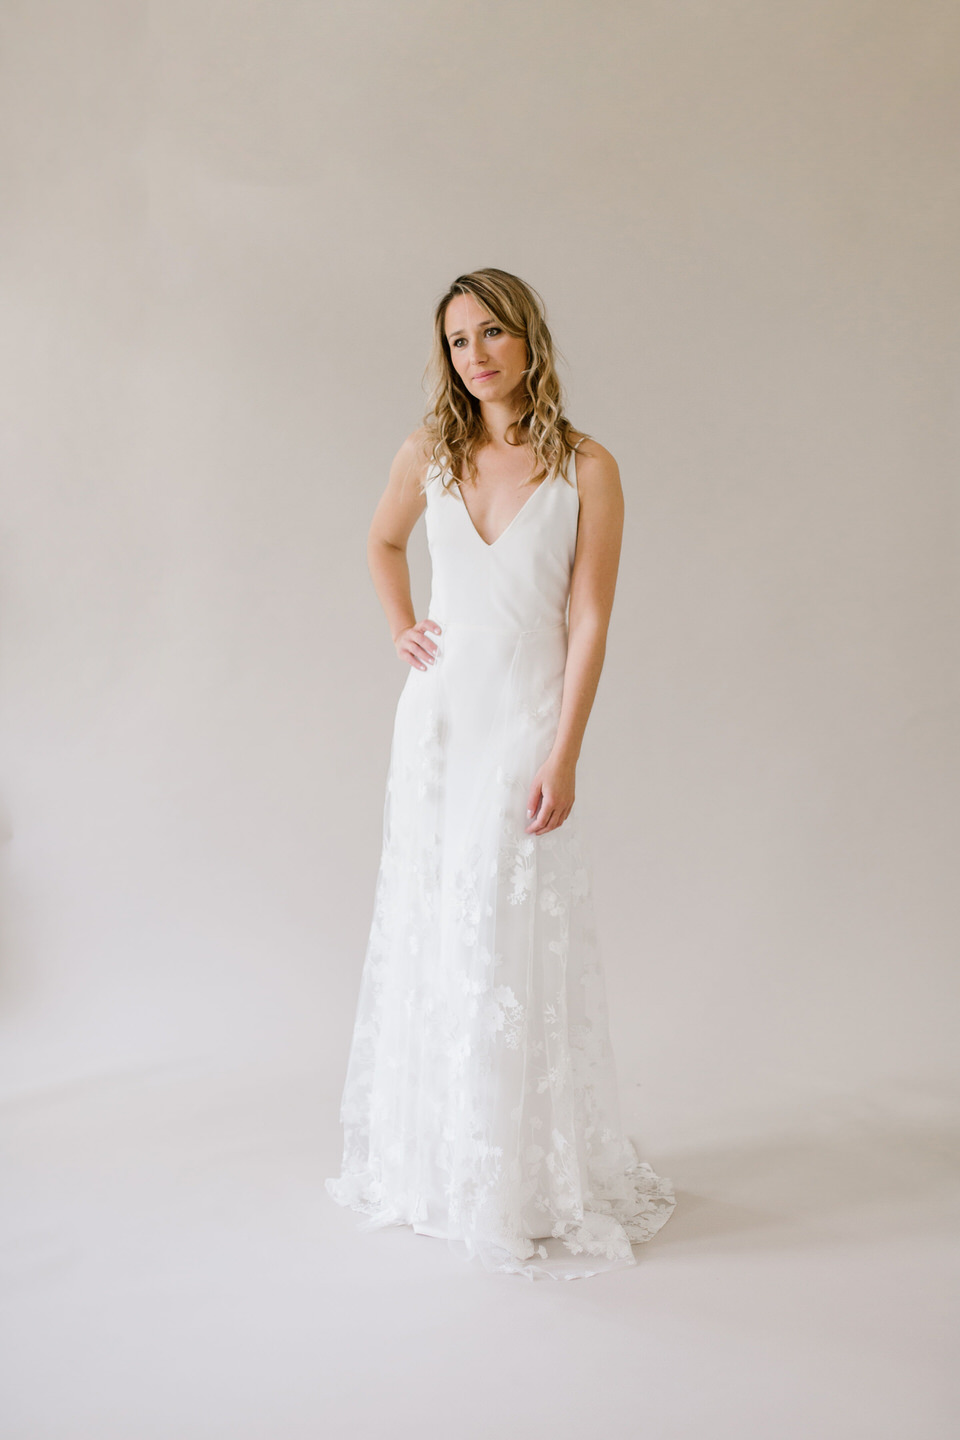 Marie-Catherine Le Hodey wedding dress @ Melody Nelson